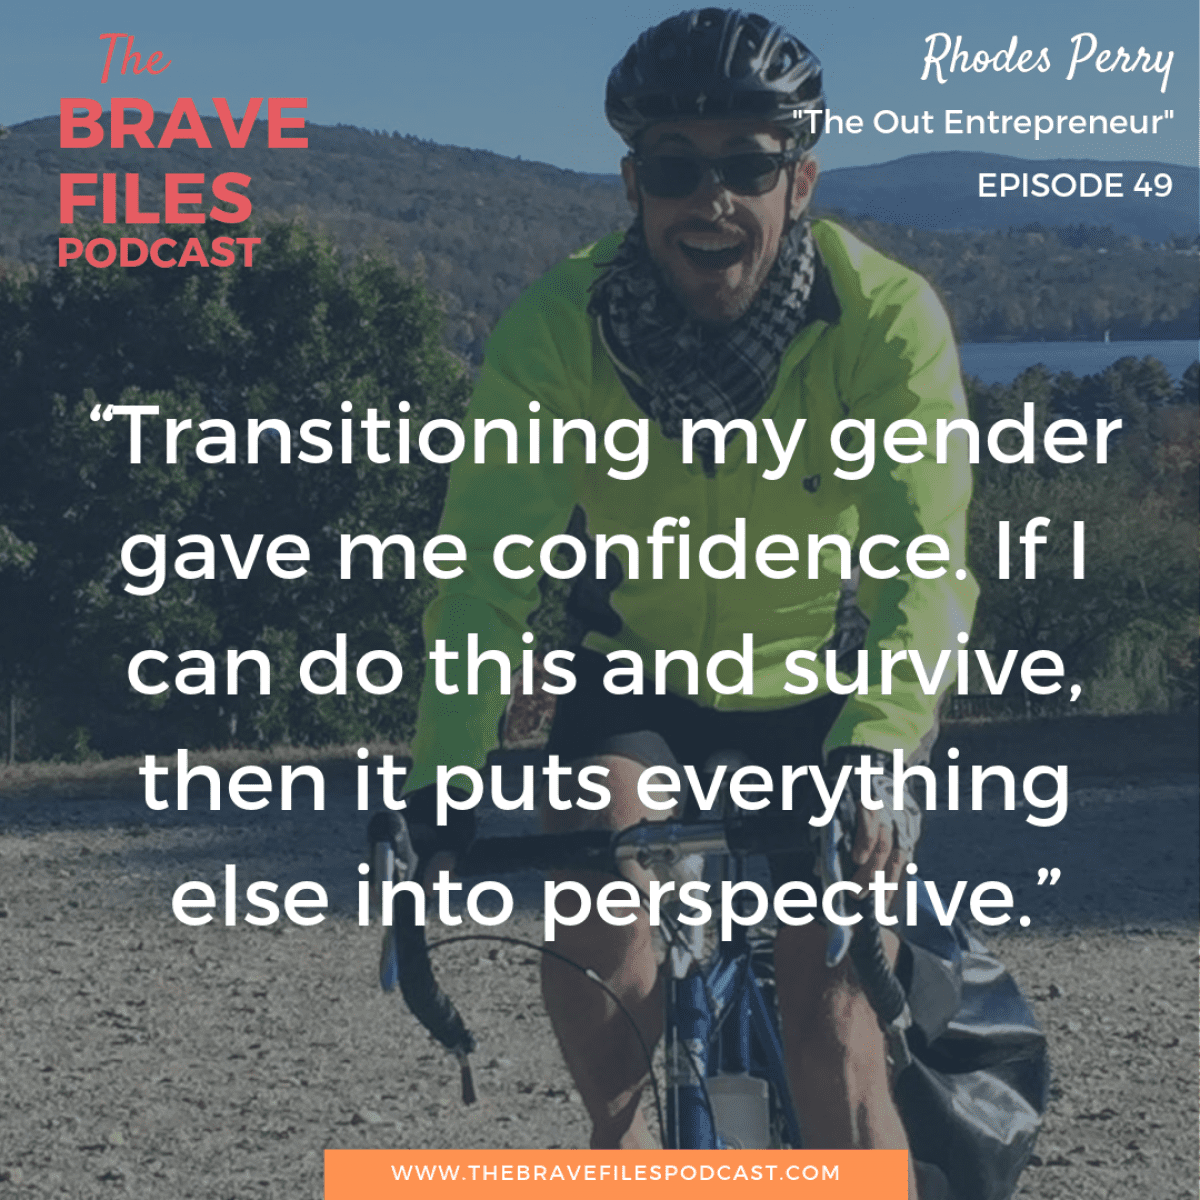 The Brave Files Podcast features Rhodes Perry from The Out Entrepreneur. We talk about confidence, authenticity and perspective!